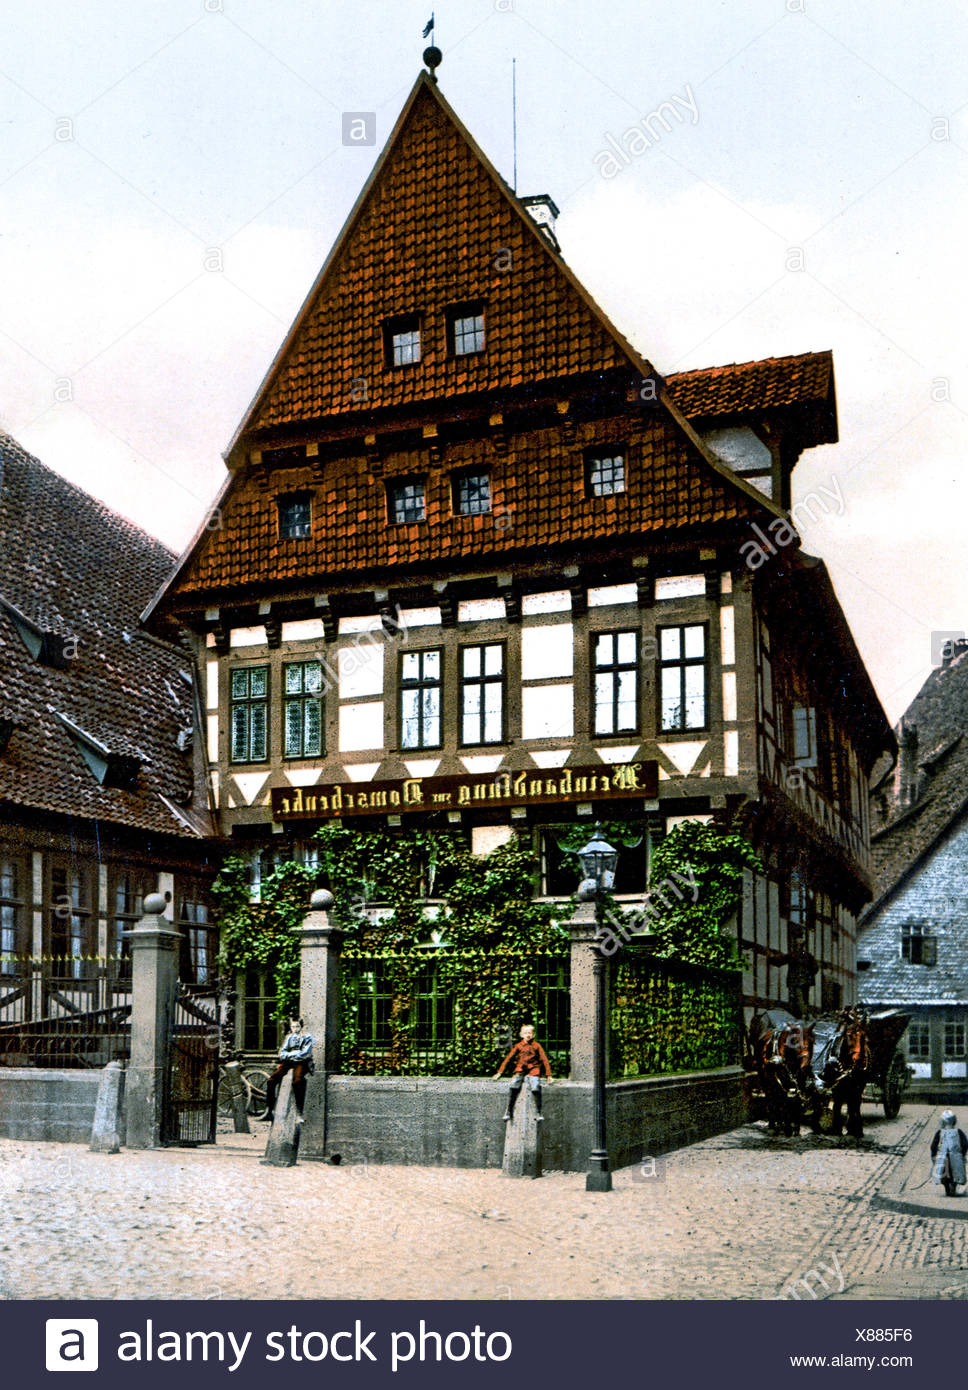 Germany Pictures About 1900 Stock Photos & Germany Pictures About ...